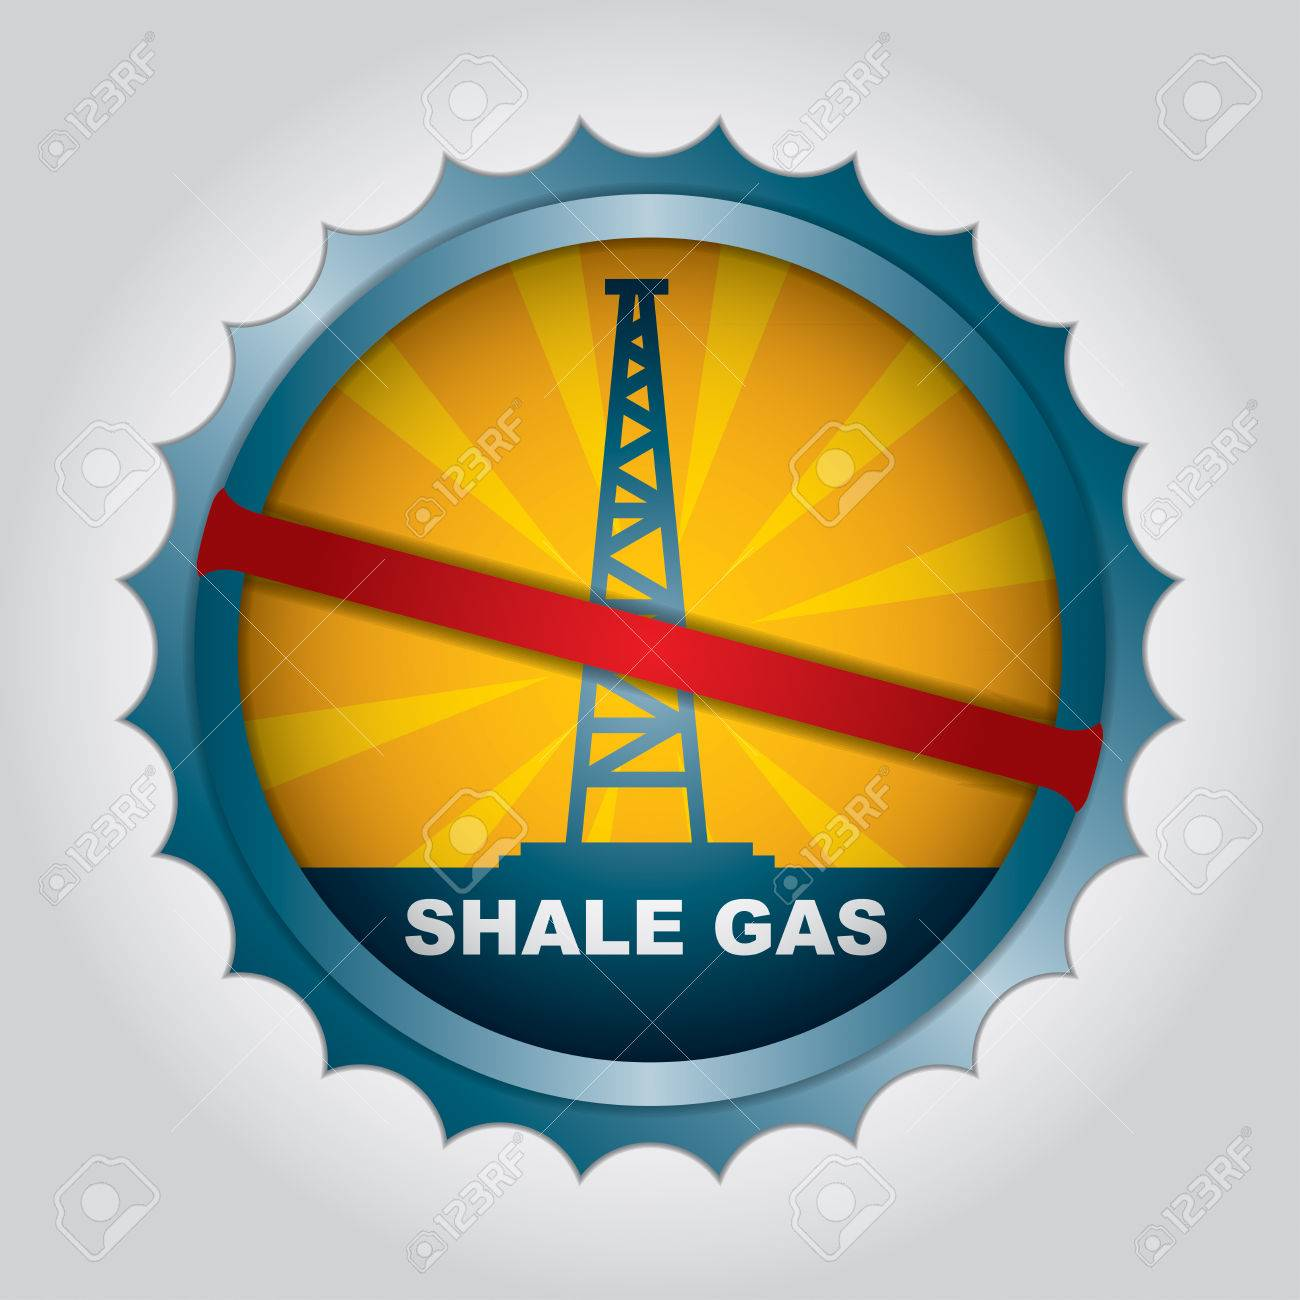 Label for the exploitation of shale gas ban Stock Vector - 24814383